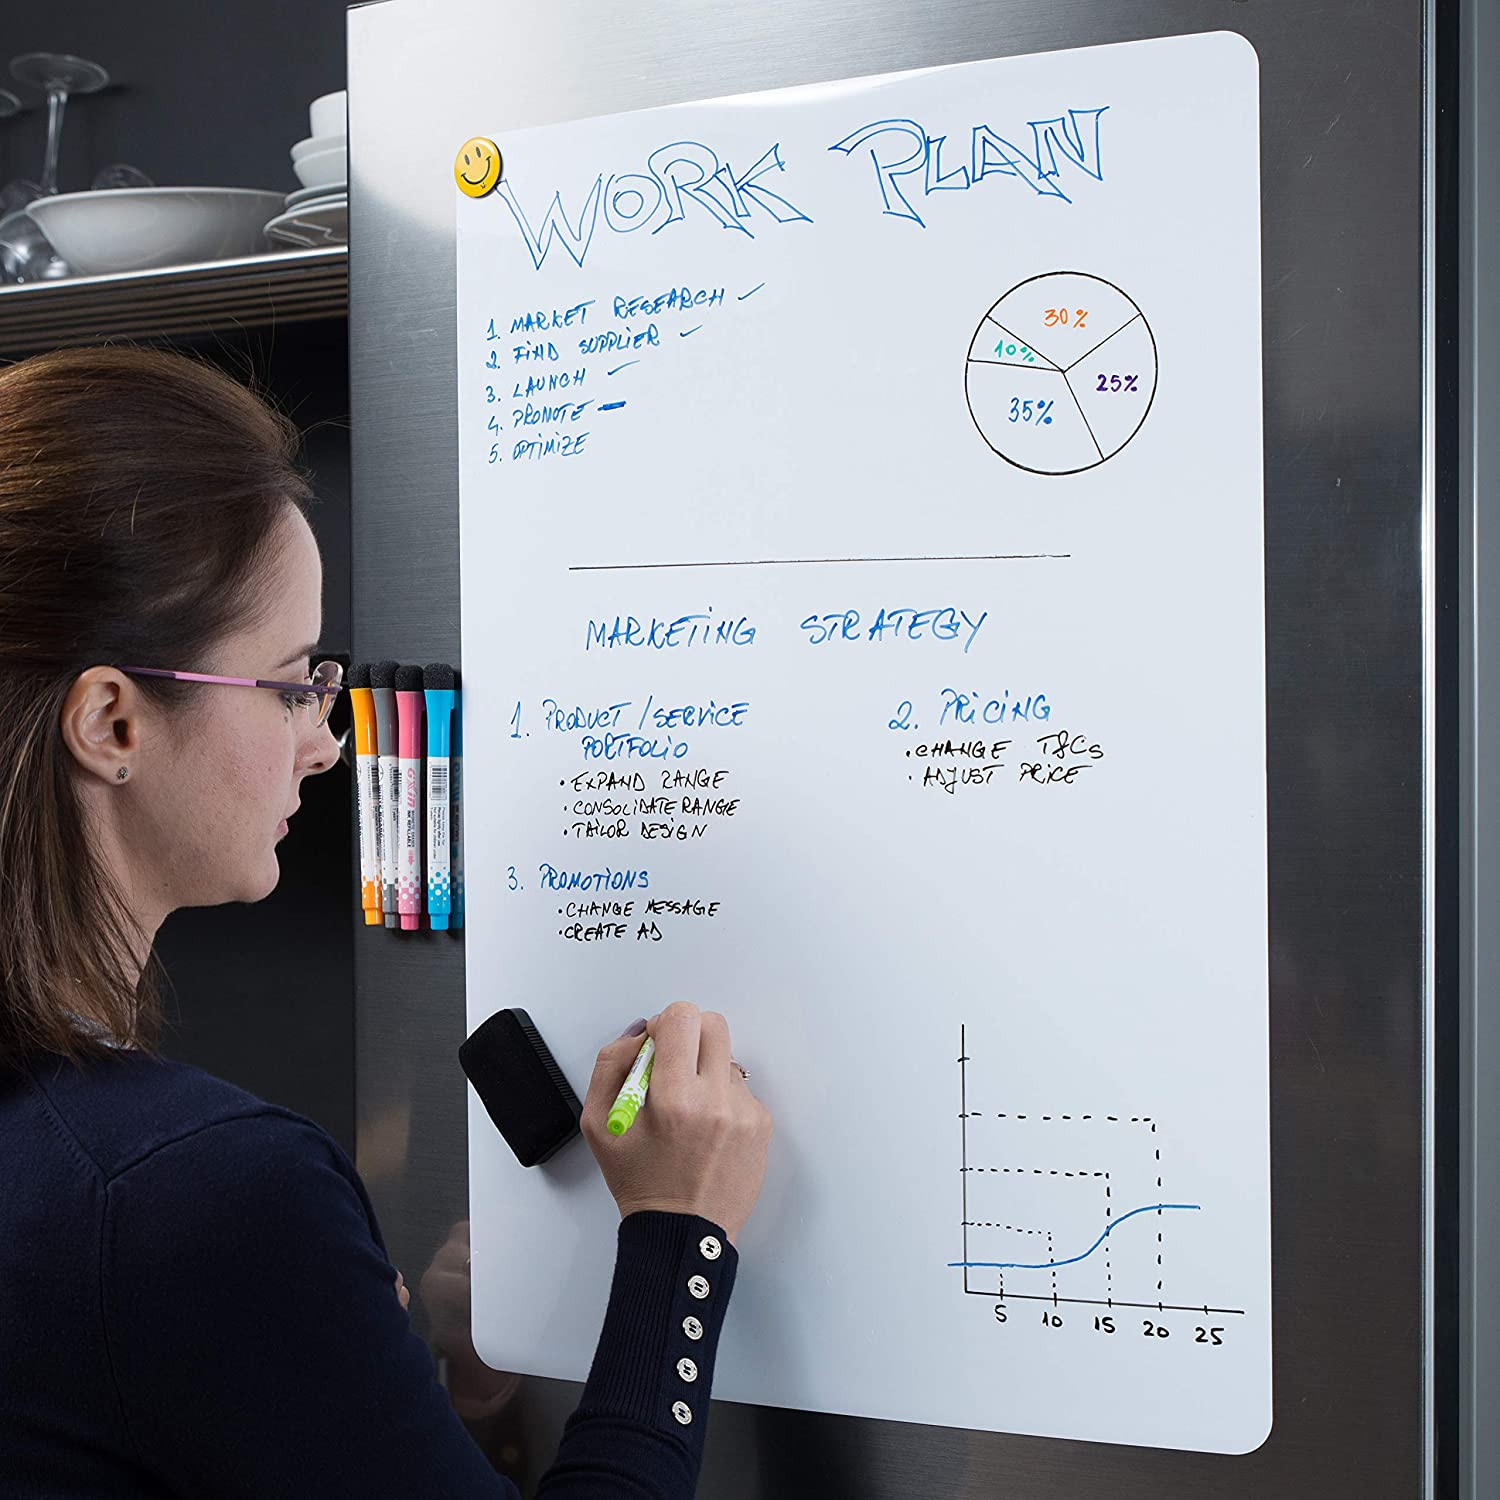 """Extra Large Magnetic Dry Erase Whiteboard Sheet for Fridge 25x17"""" with New Stain Resistant Technology - Best Value All Included - White Board for Refrigerator - Kitchen Whiteboard - Reminder Board"""